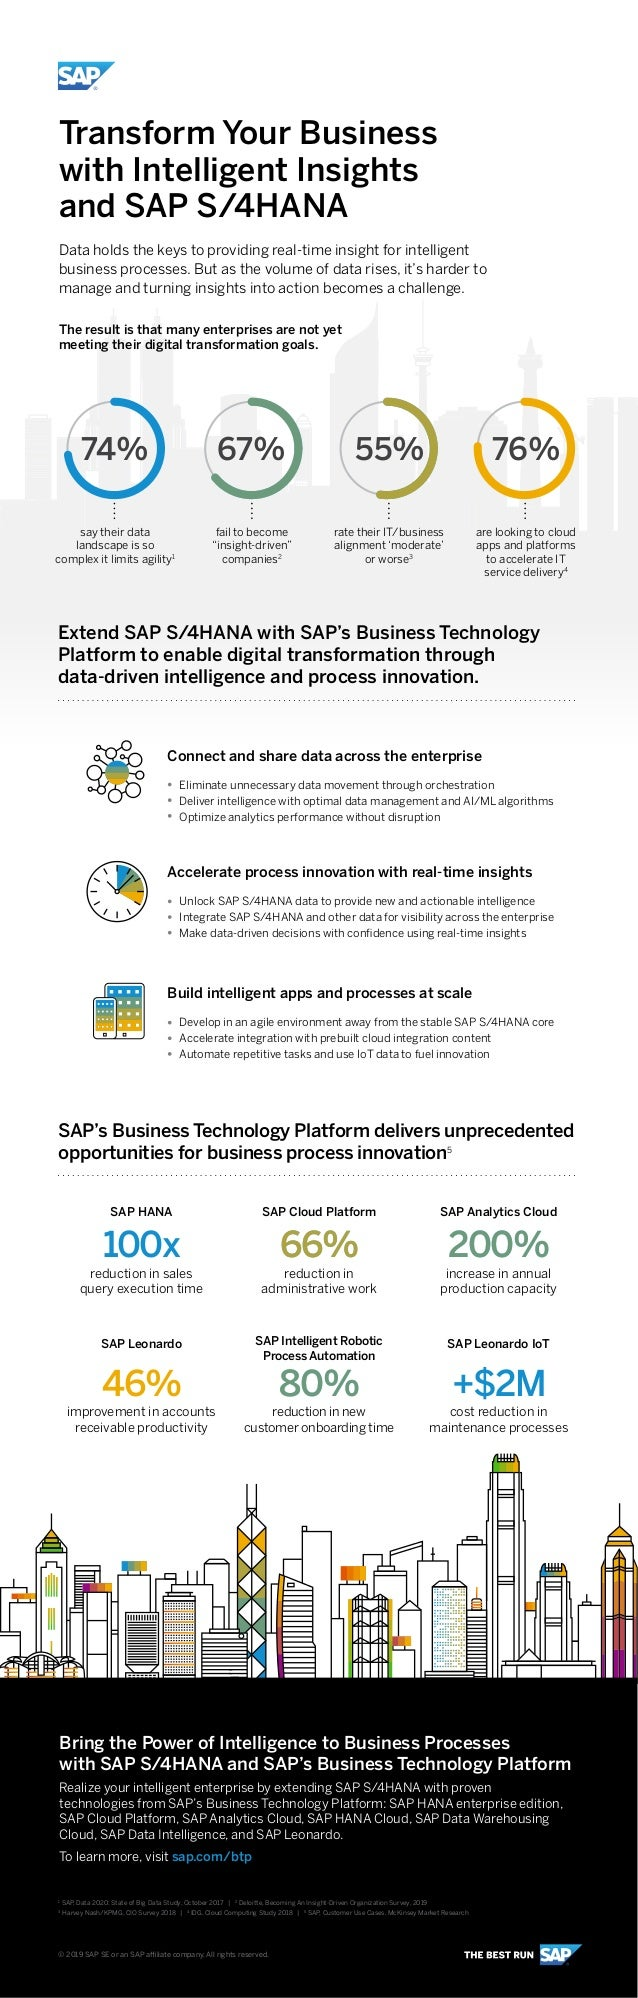 Transform Your Business with Intelligent Insights and SAP S/4HANA Data holds the keys to providing real-time insight for i...